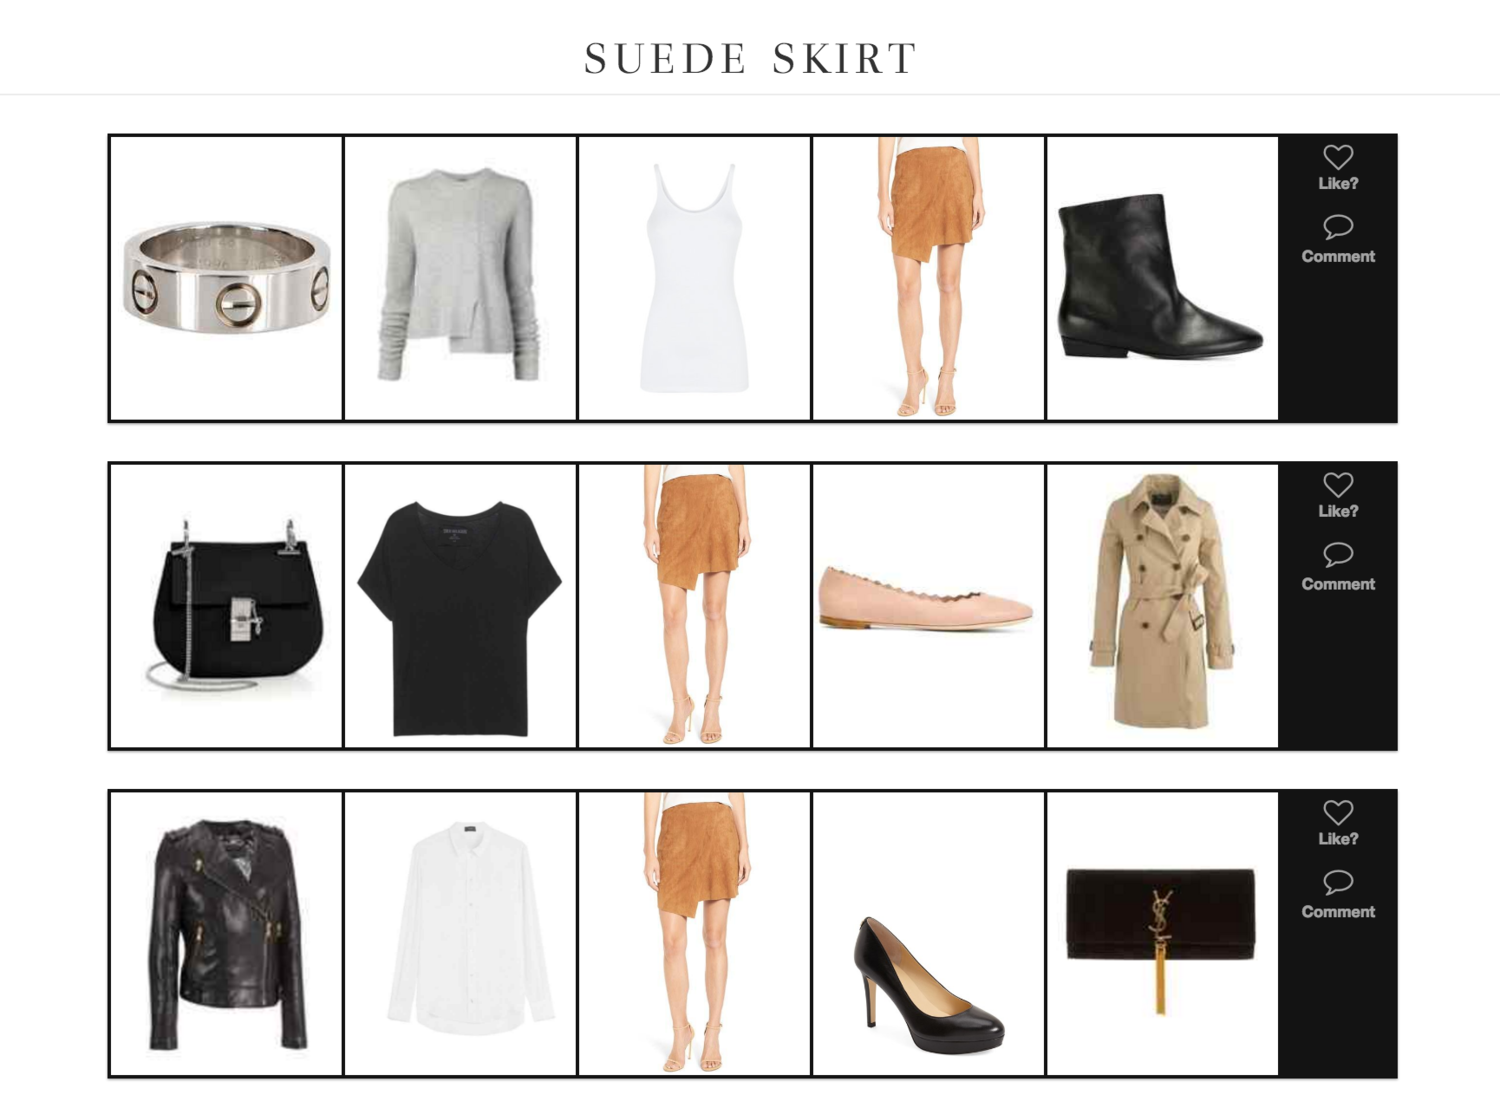 Three Ways to Style a Suede SKirt